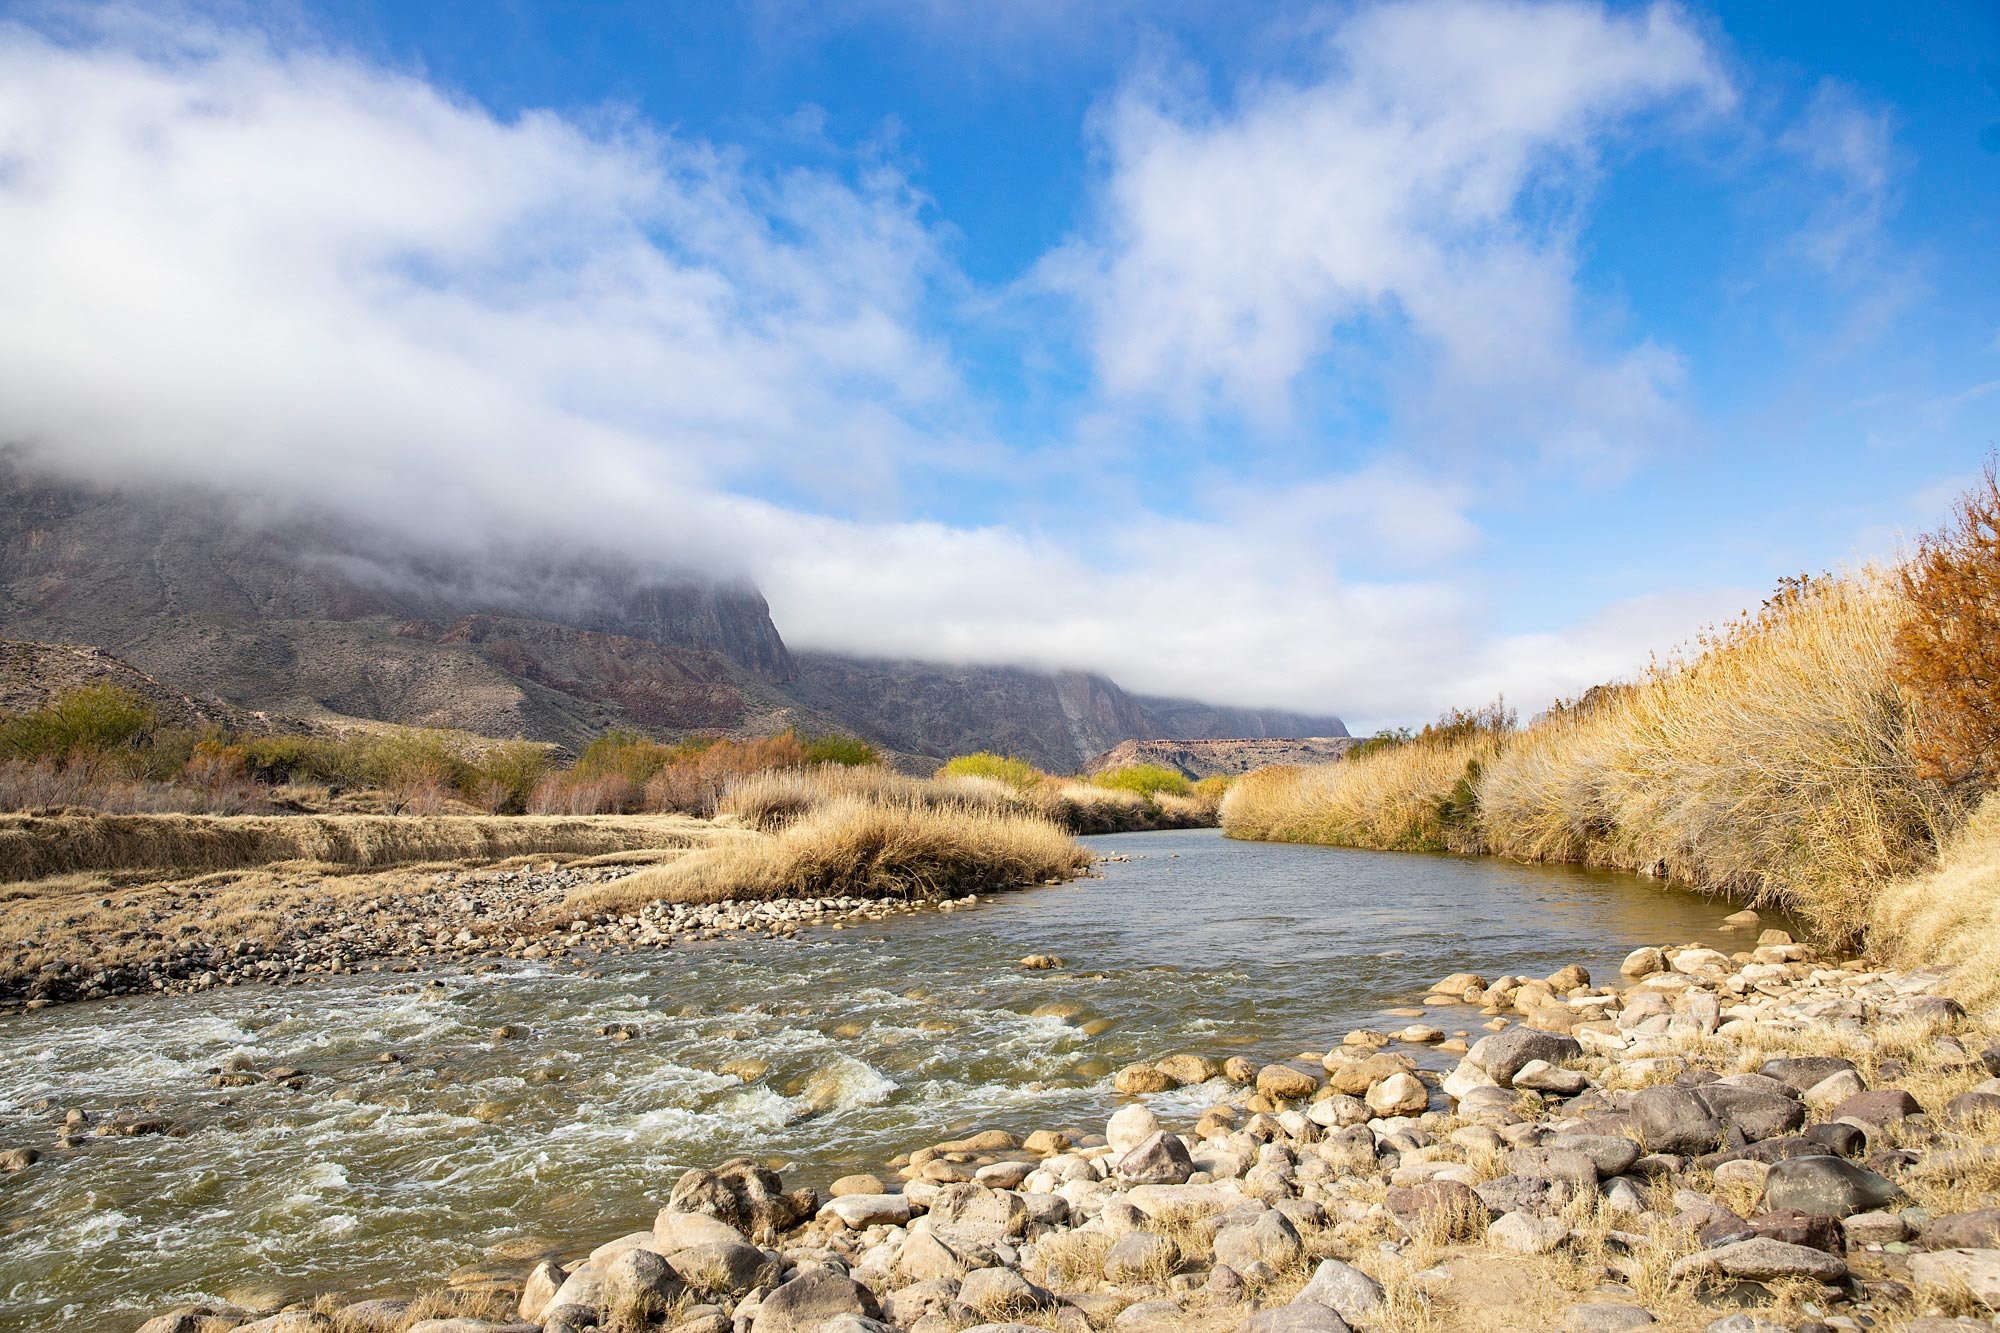 Rio Grande River - Big Bend Ranch State Park